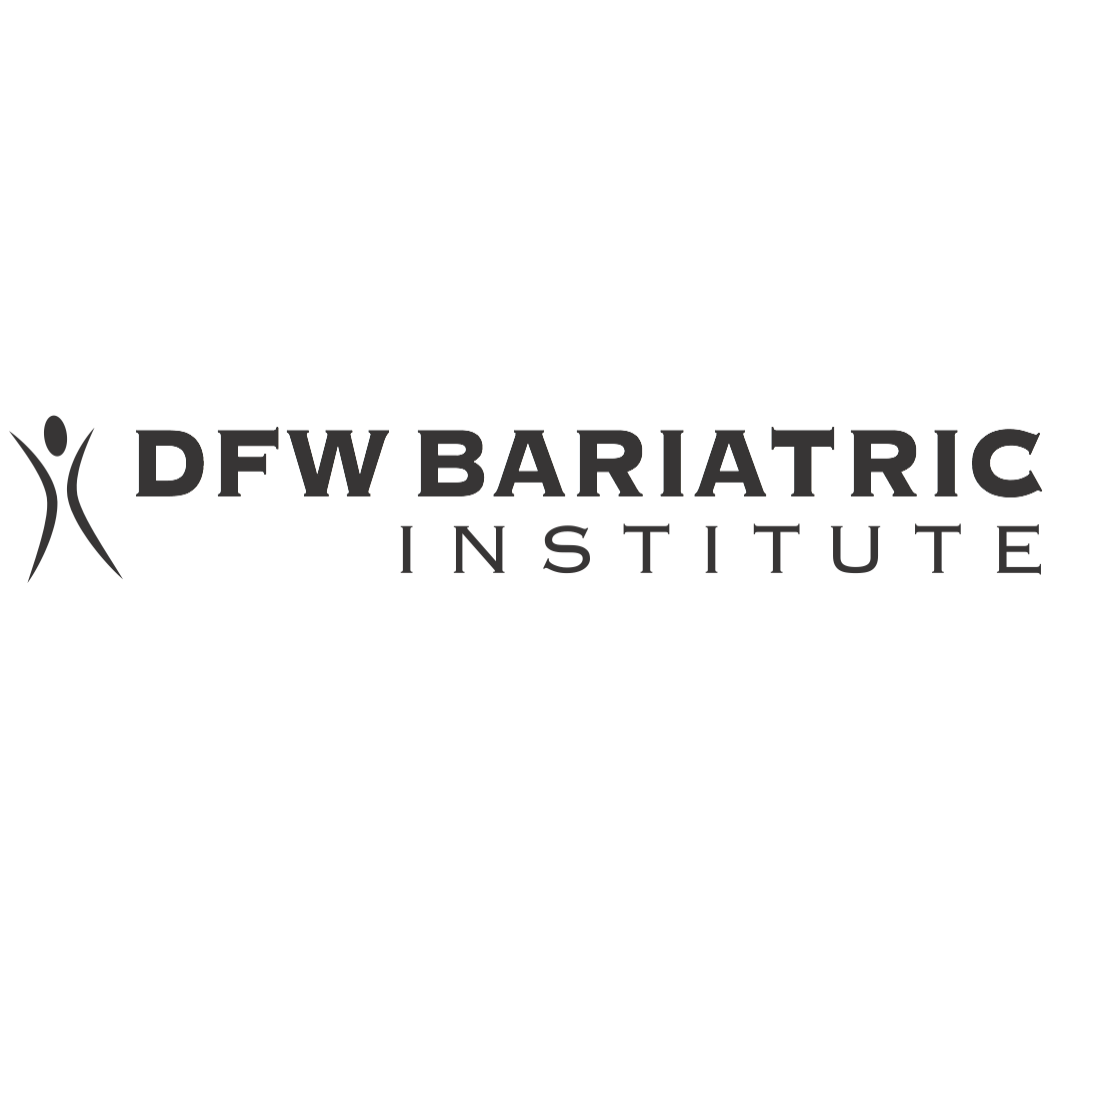 Weight Loss Service in TX Frisco 75034 DFW Bariatric Institute 8350 Dallas Parkway Suite 300 (817)369-3300